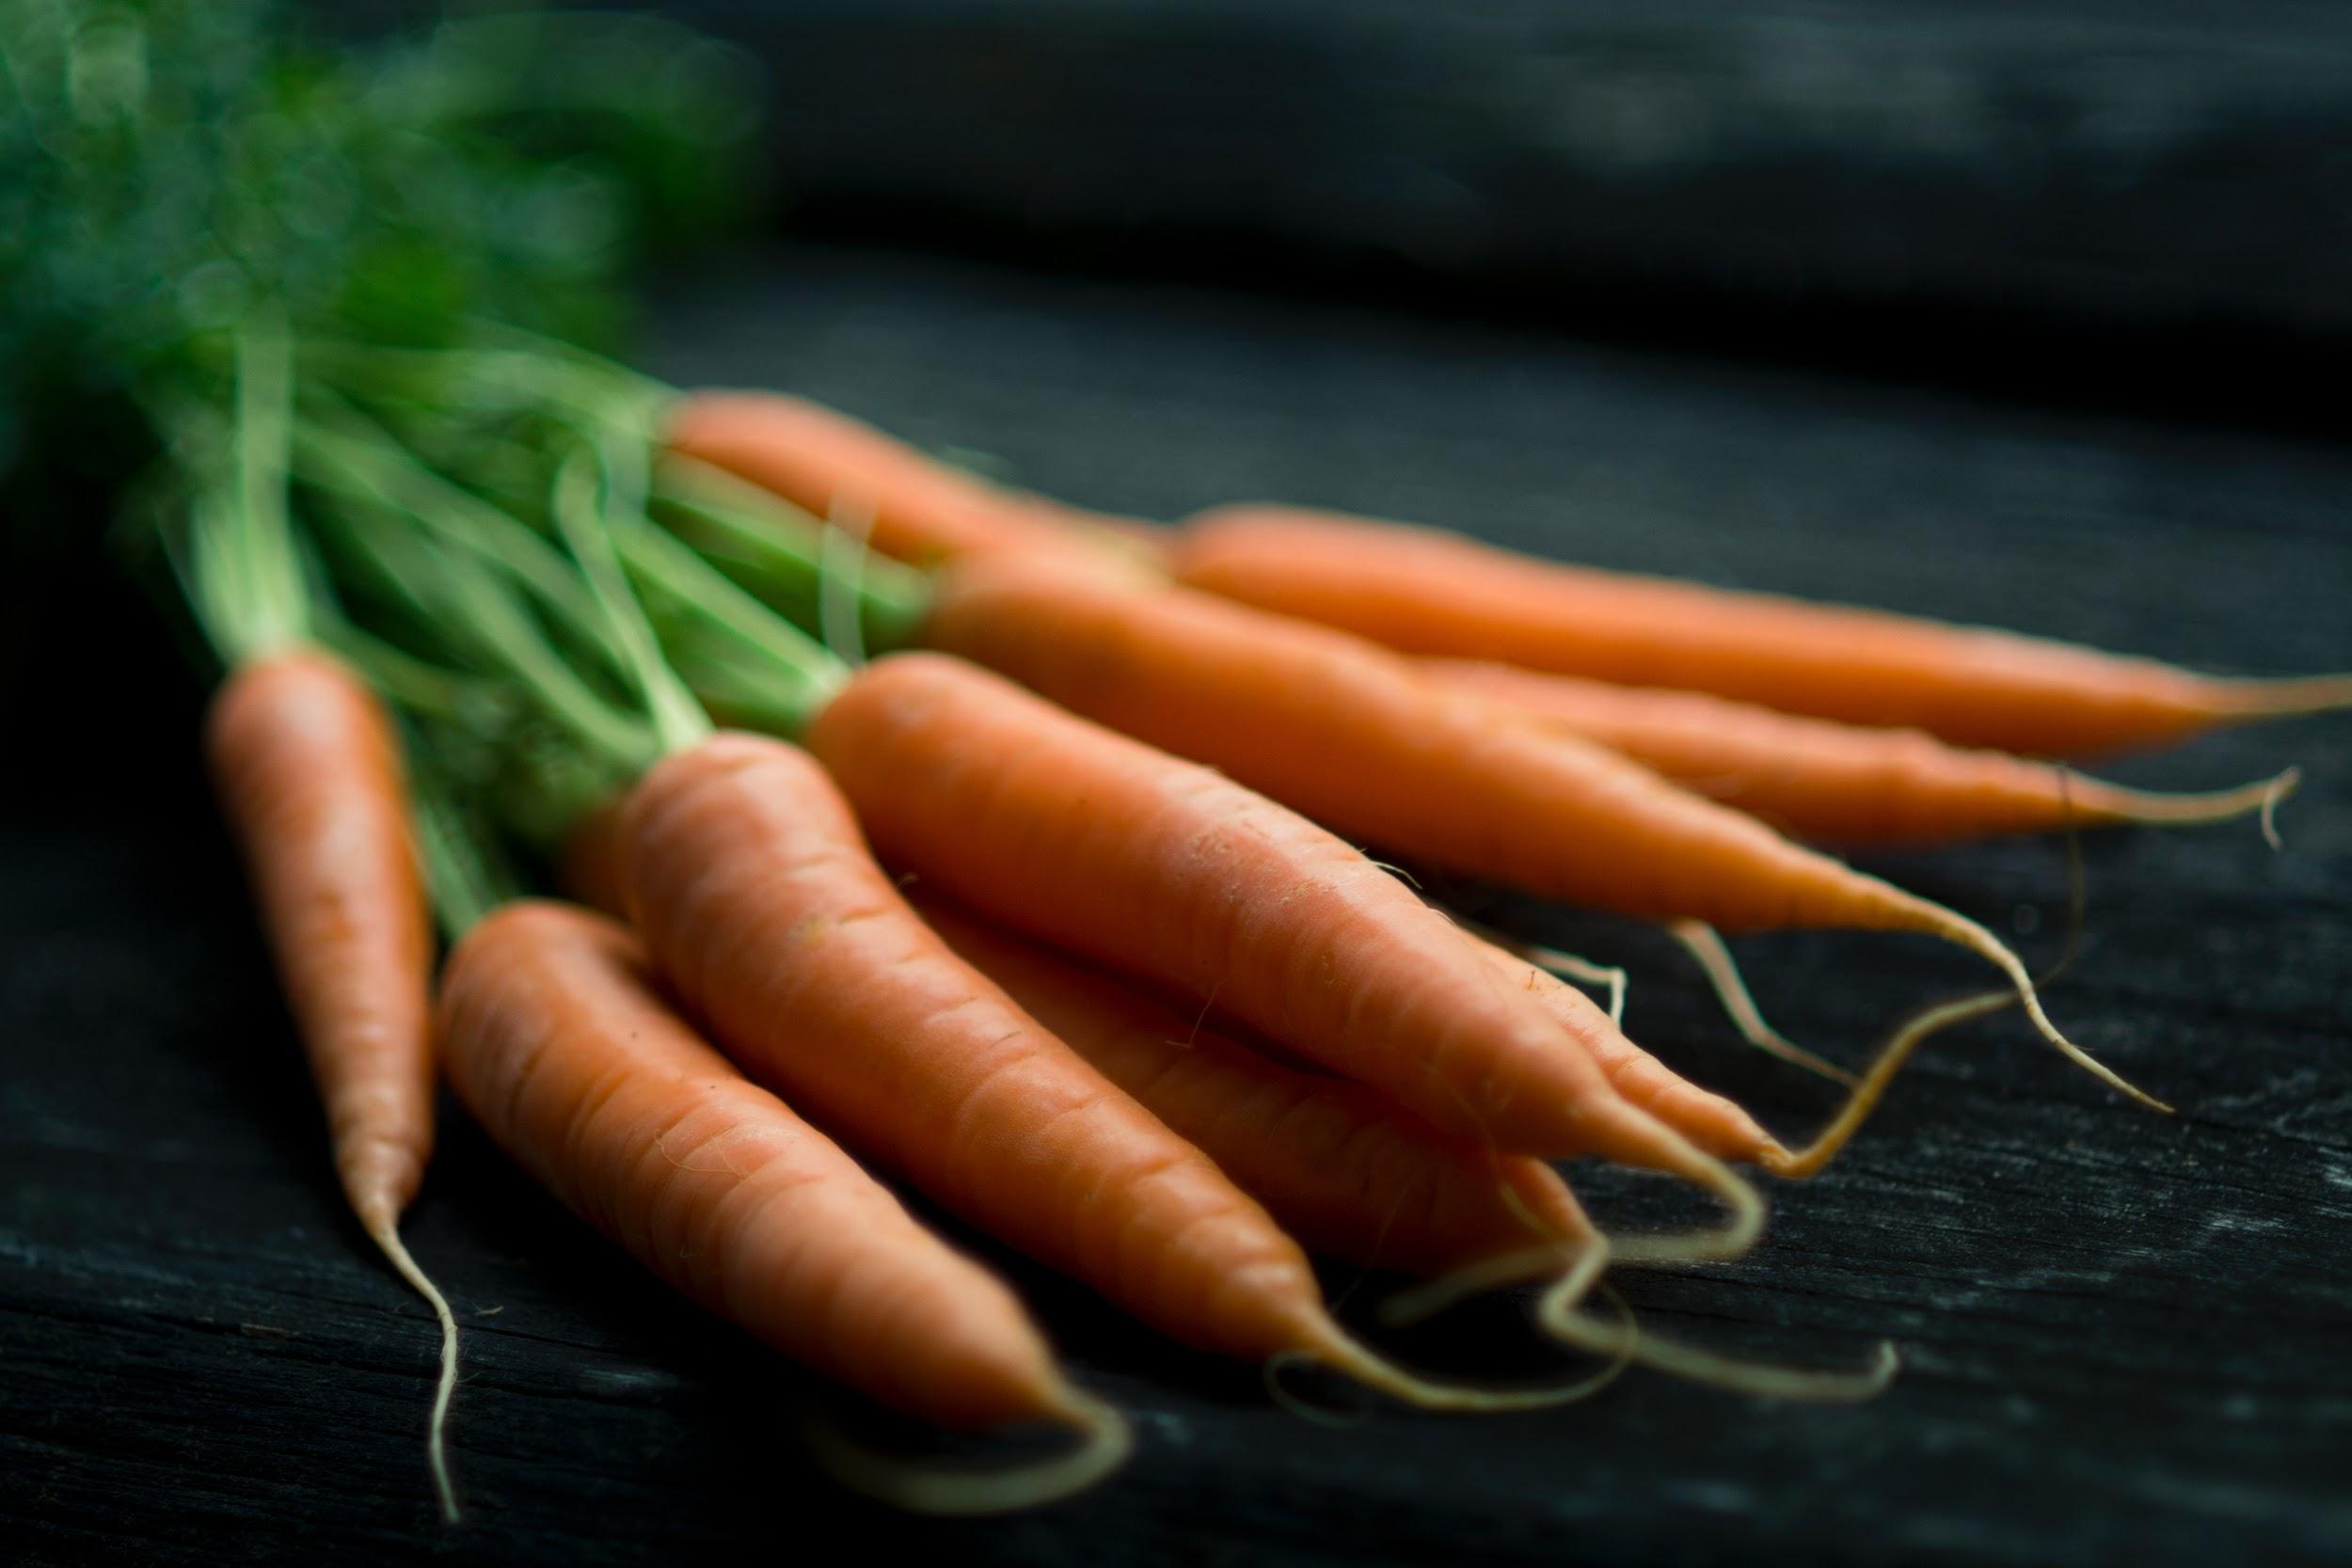 A bunch of orange carrots are shown laying on a dark table